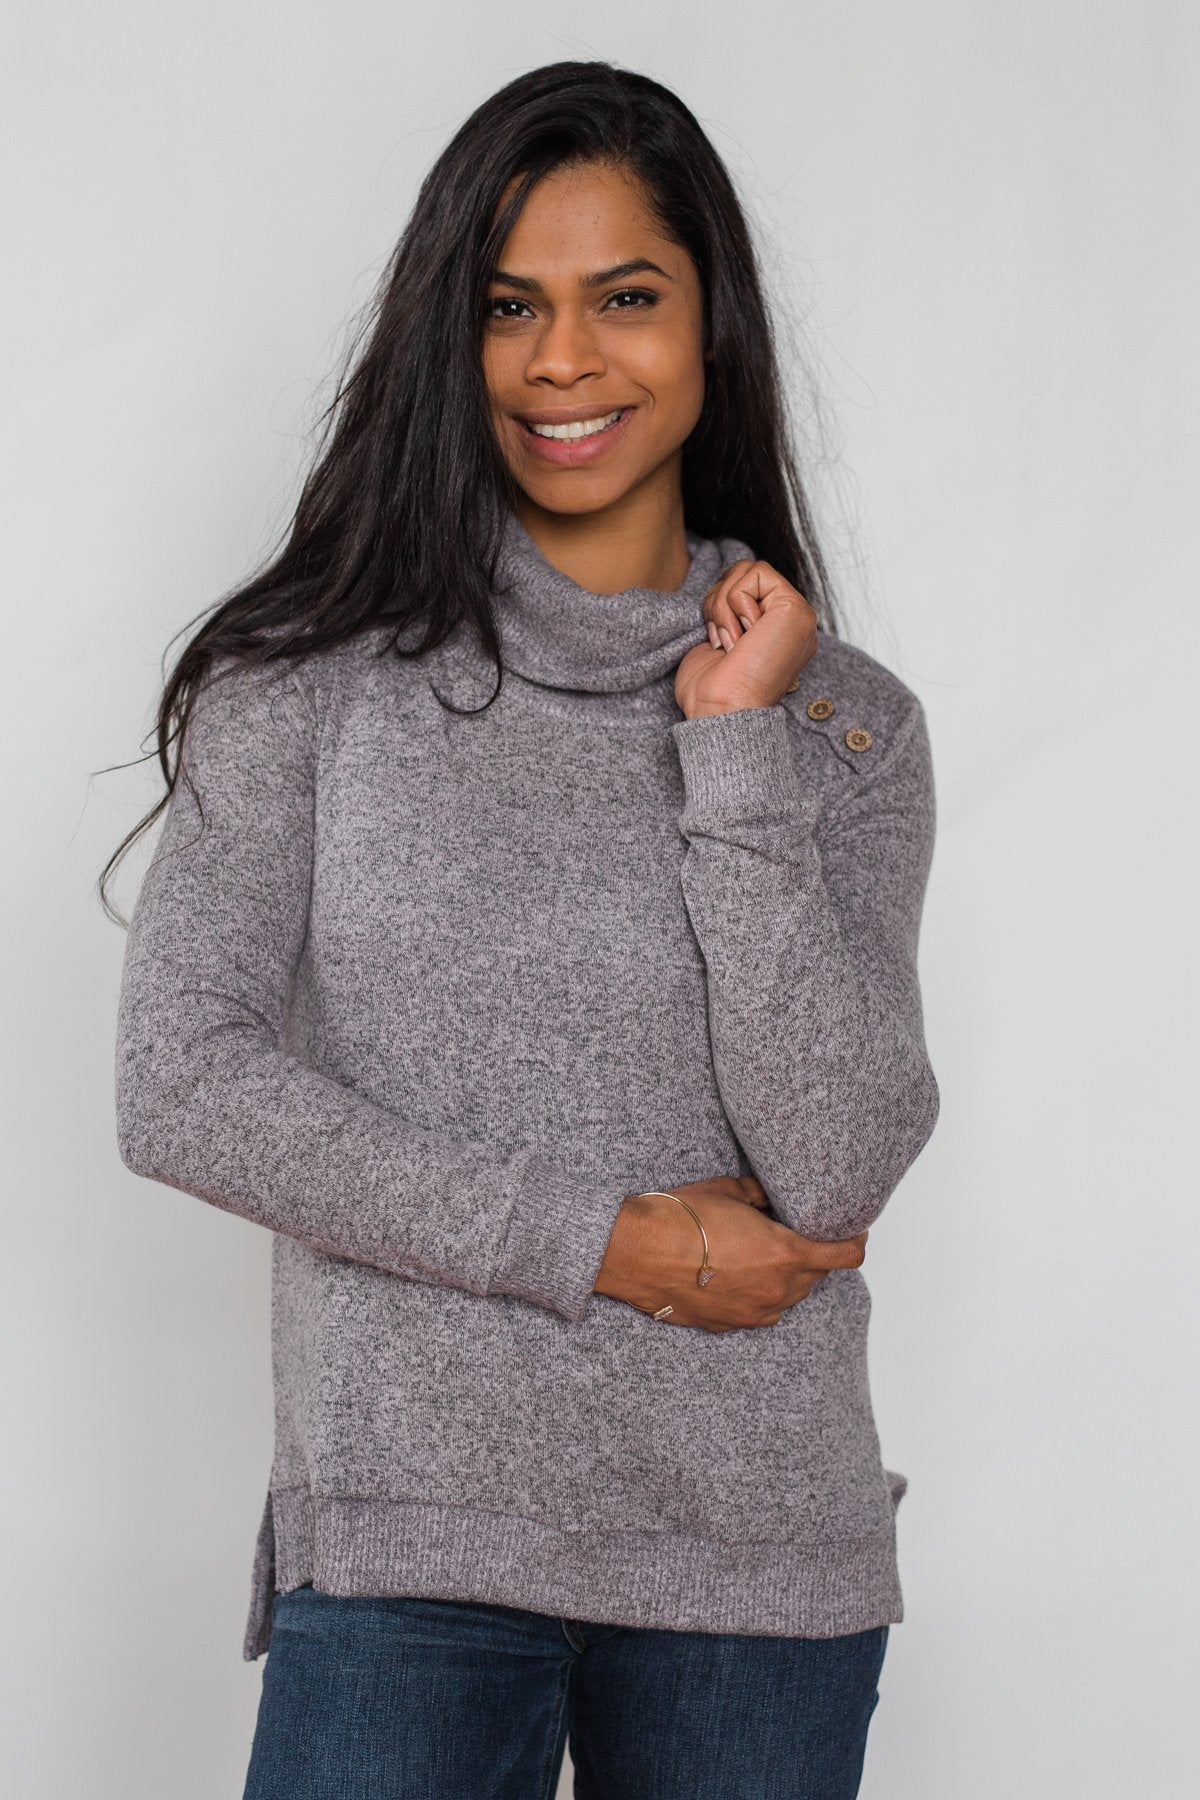 Hooked on a Feeling Cowl Neck Top - Lavender